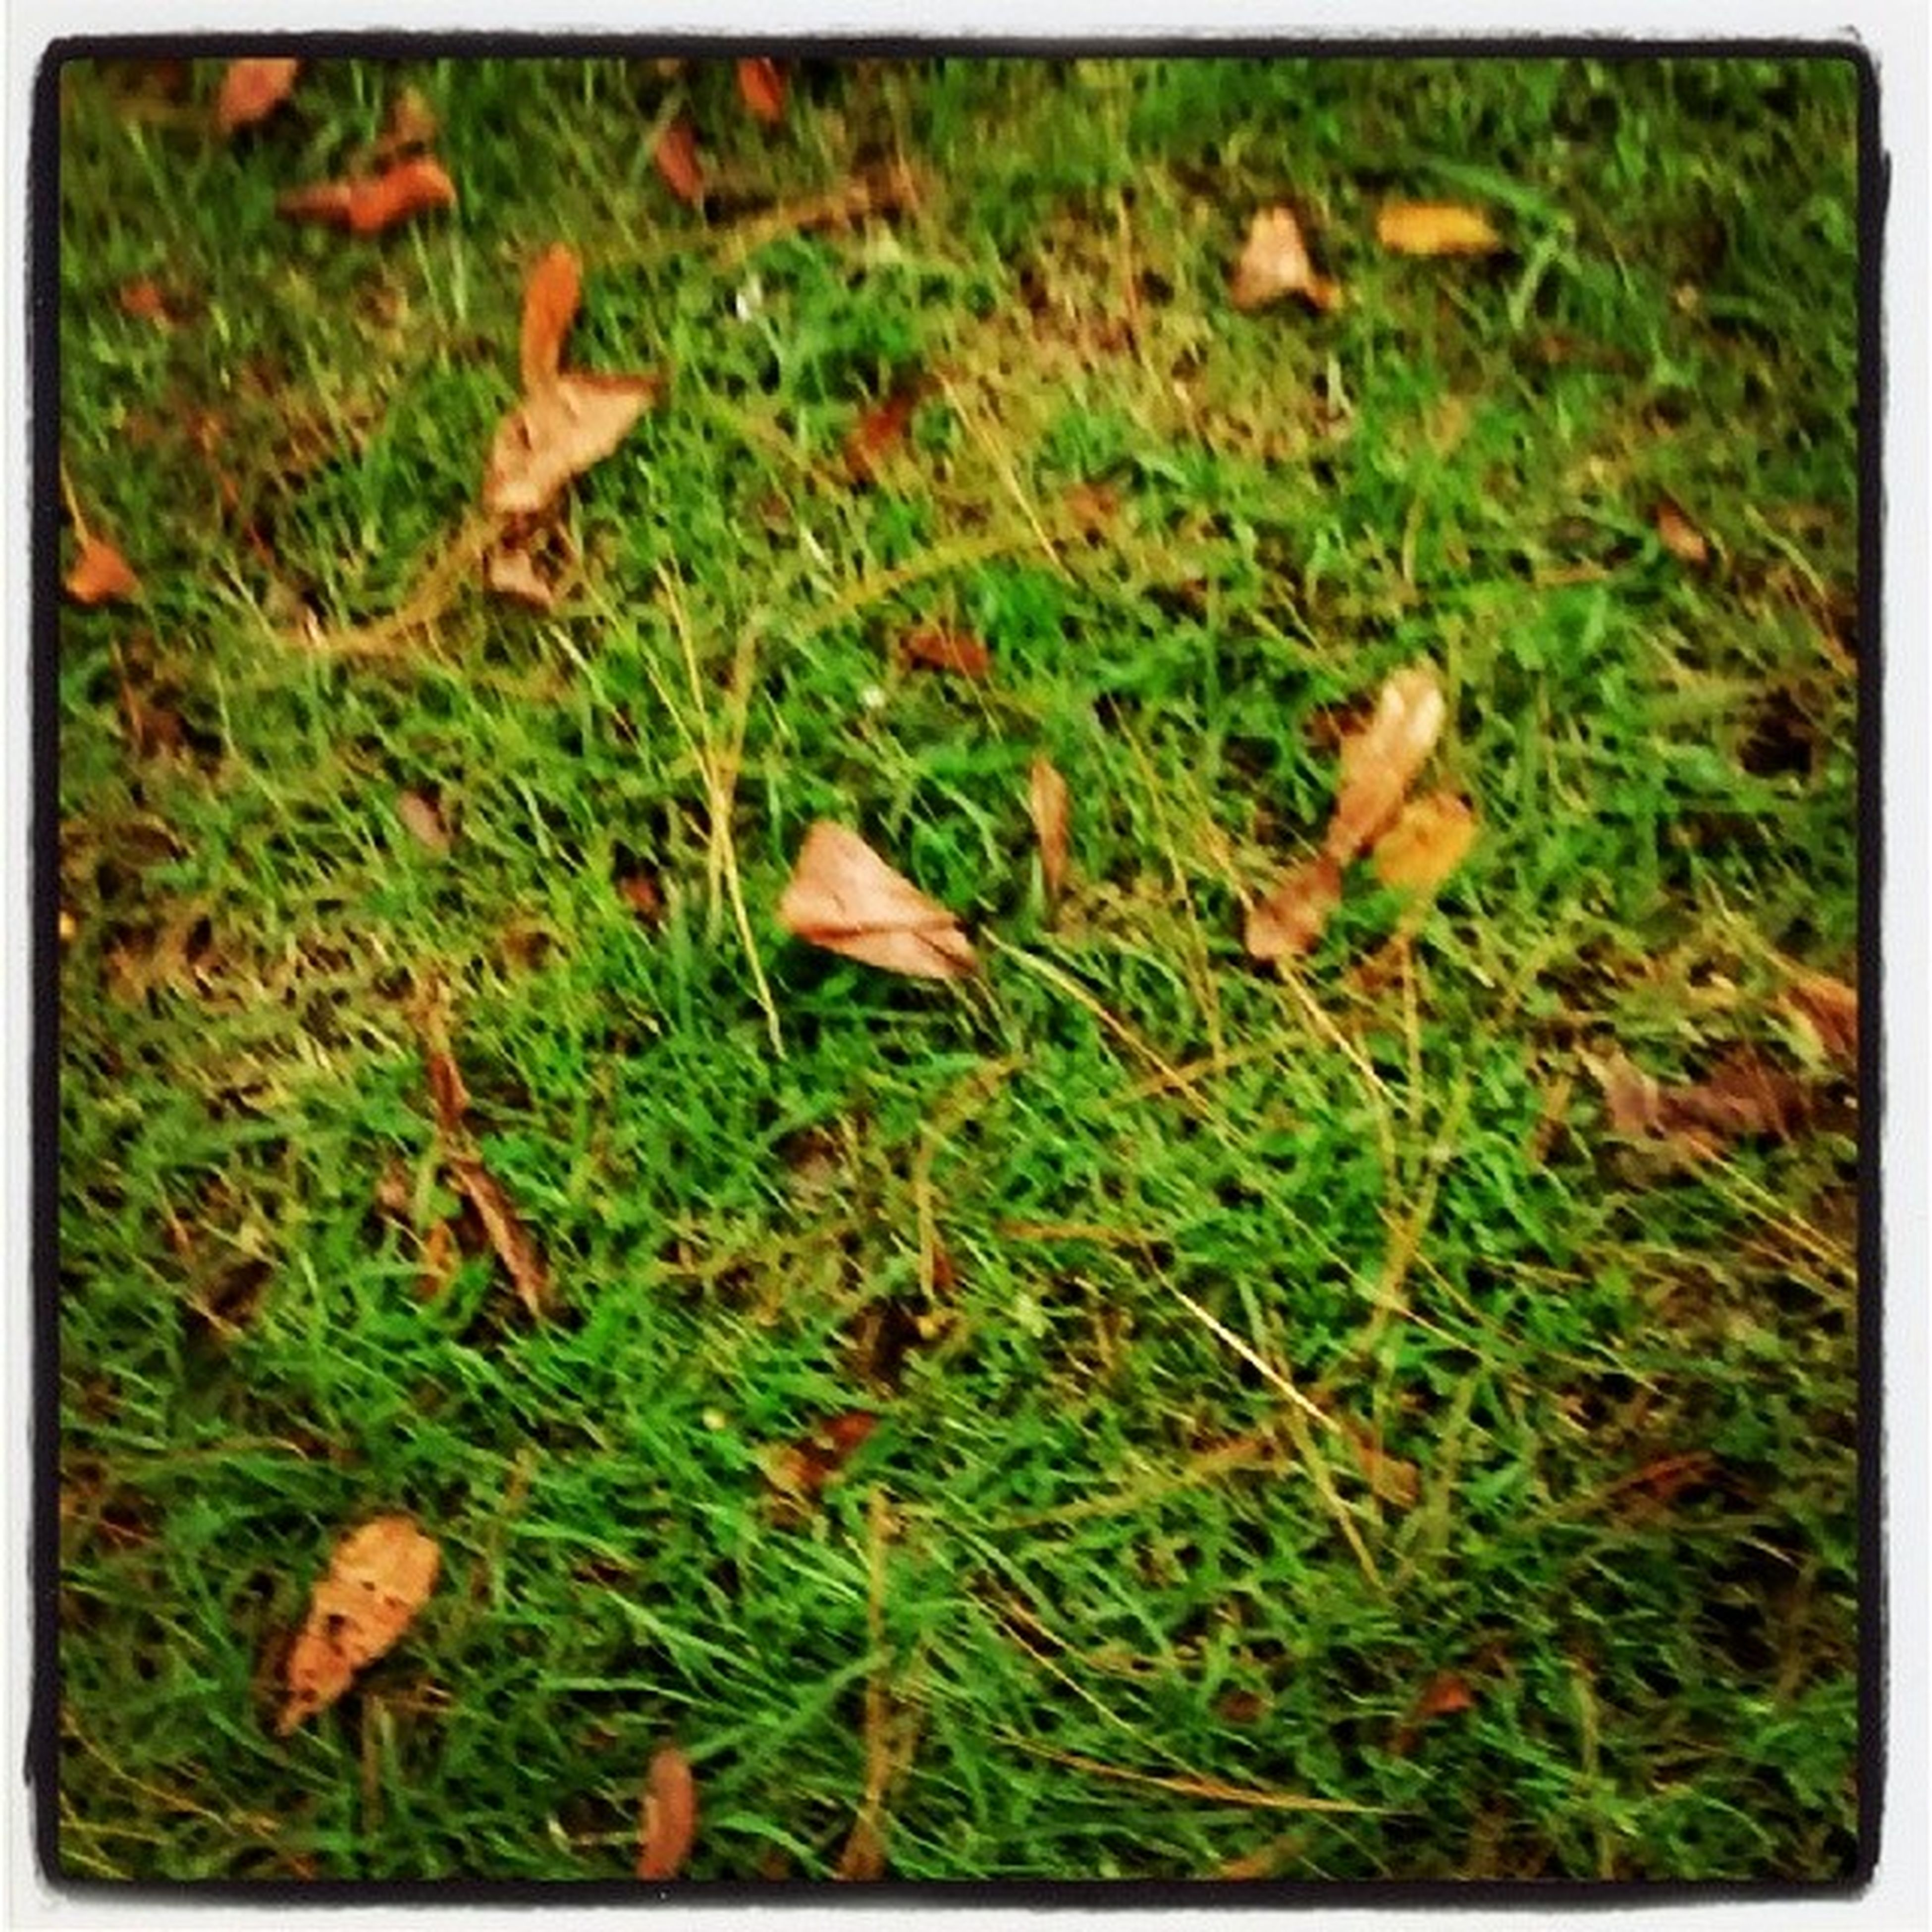 grass, transfer print, field, leaf, autumn, auto post production filter, high angle view, dry, grassy, nature, change, leaves, fallen, growth, green color, ground, season, fragility, day, close-up